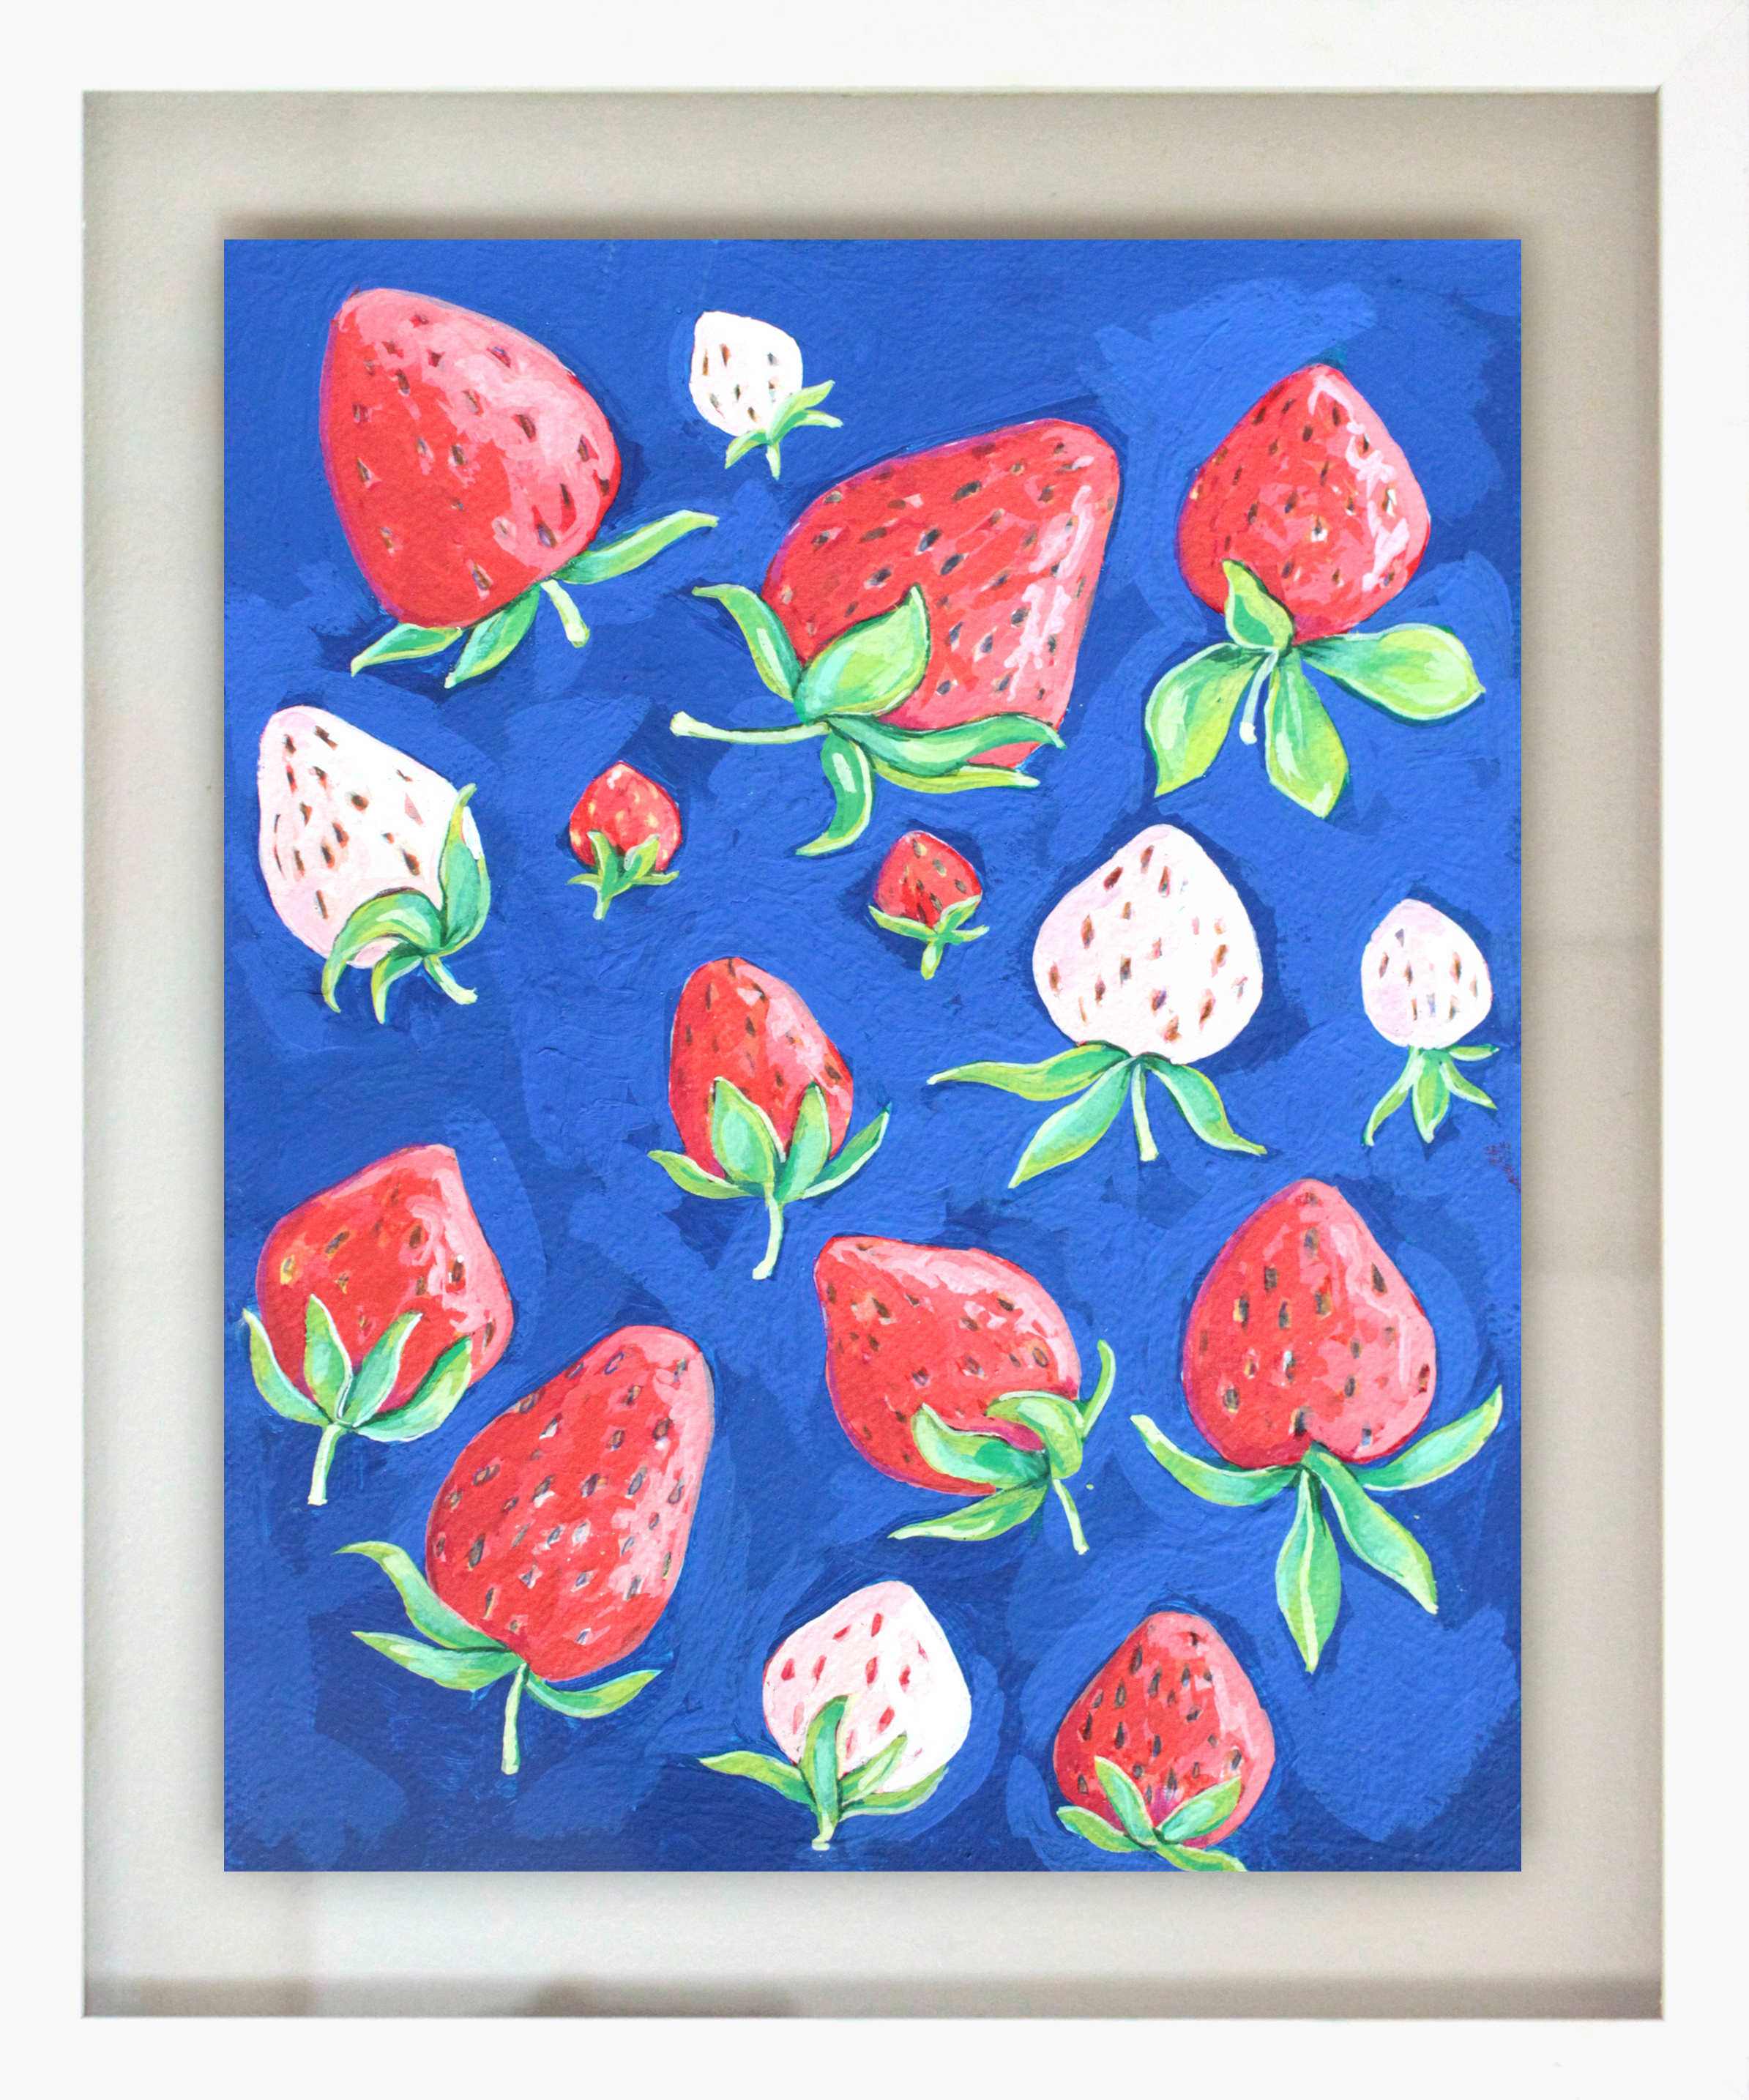 "Wild Berry Jam - 18.5"" x 15.5"" gouache on paper, framed$350"